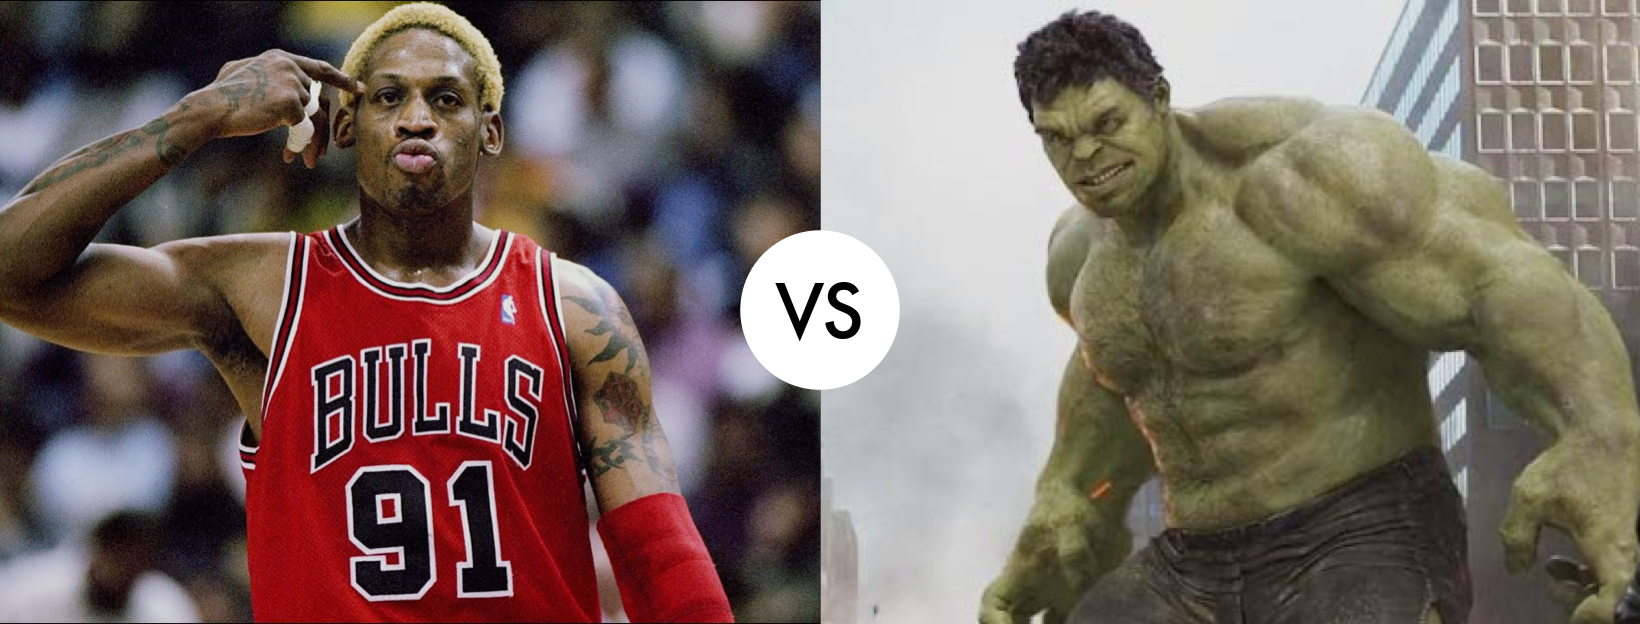 dennis-rodman-bruce-banner-incredible-hulk